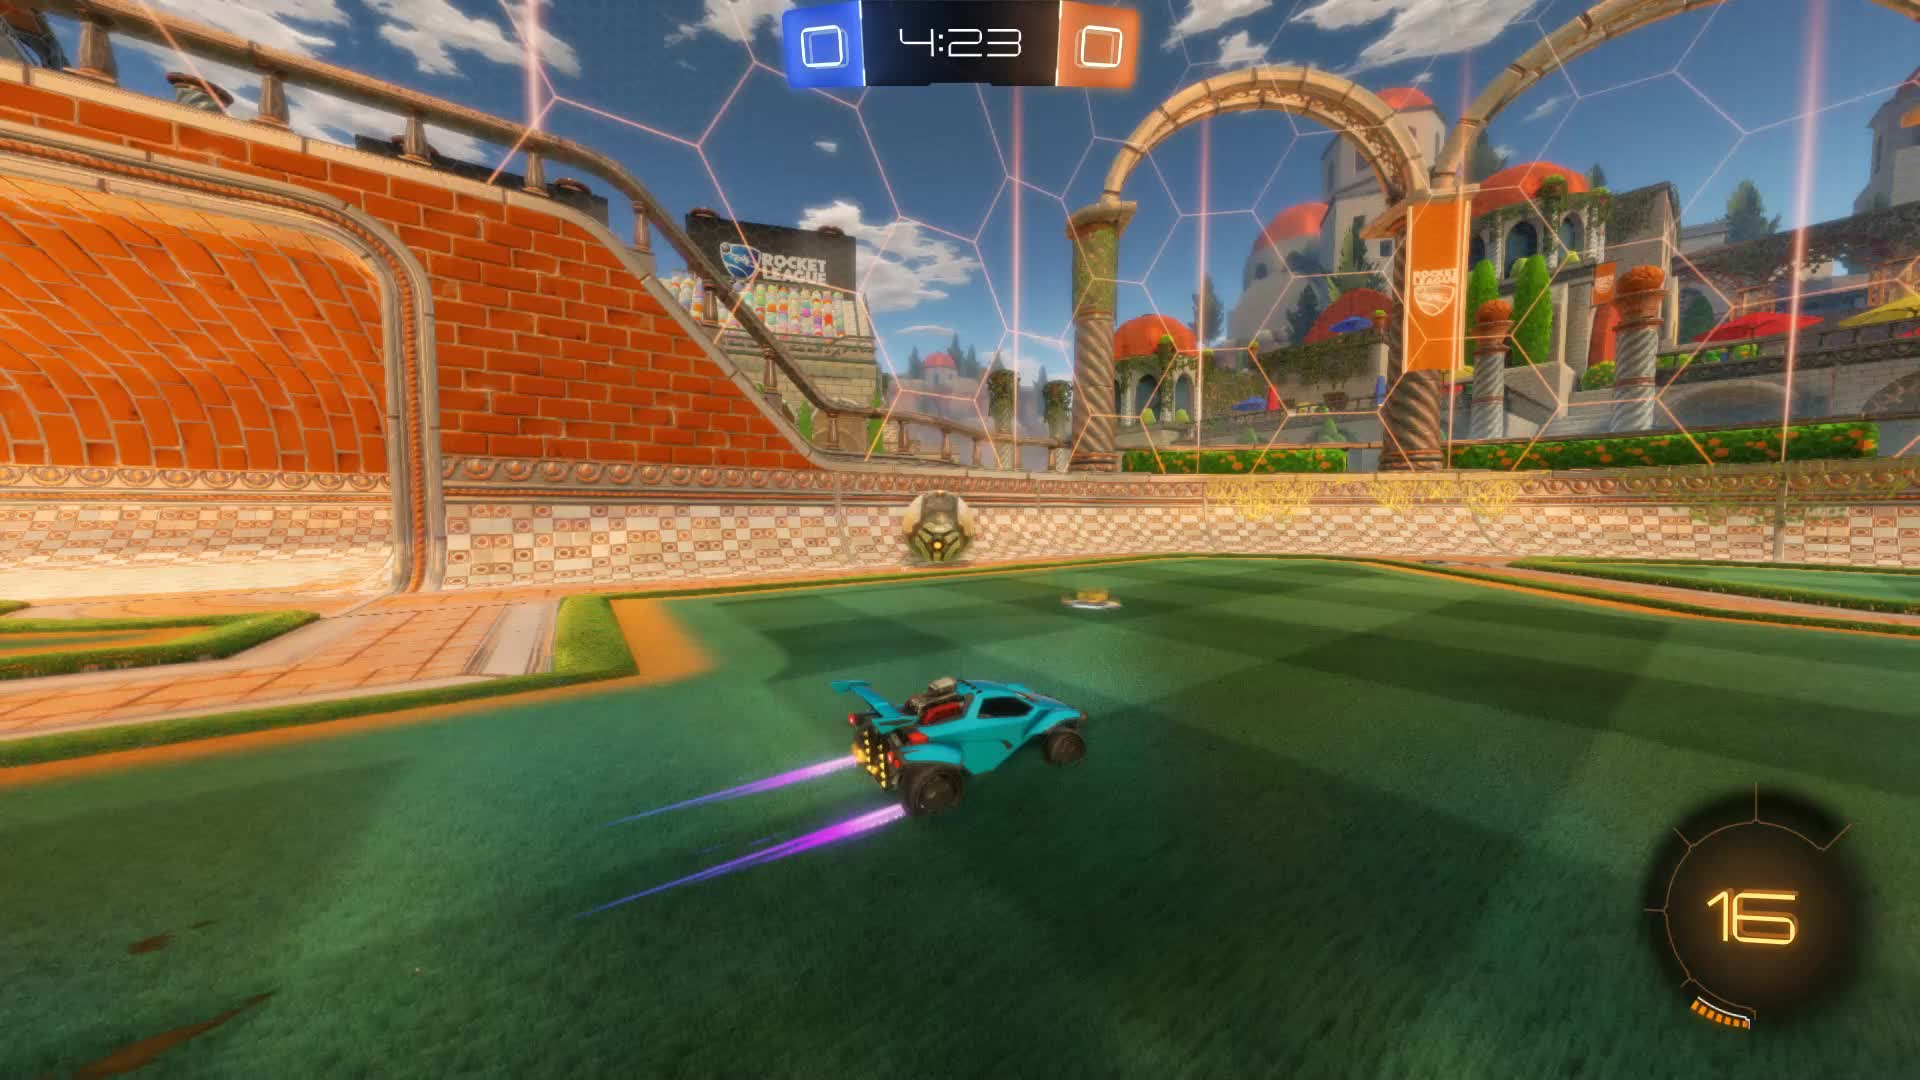 Colorado, Gif Your Game, GifYourGame, Goal, Rocket League, RocketLeague, Goal 1: Colorado GIFs